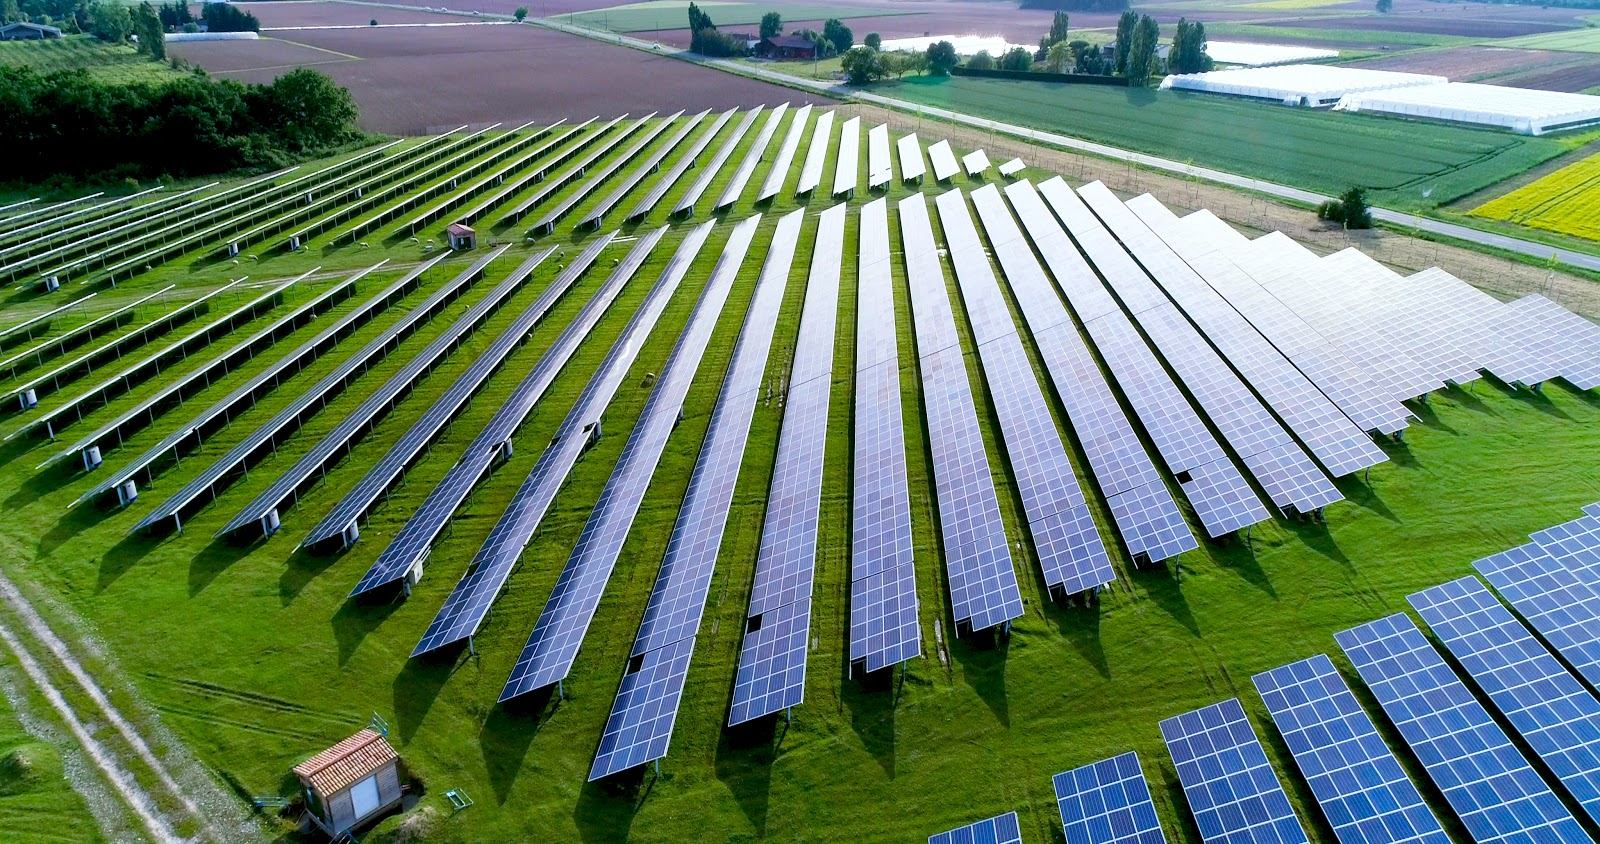 MACRS – Making the Most Out of Solar for Business